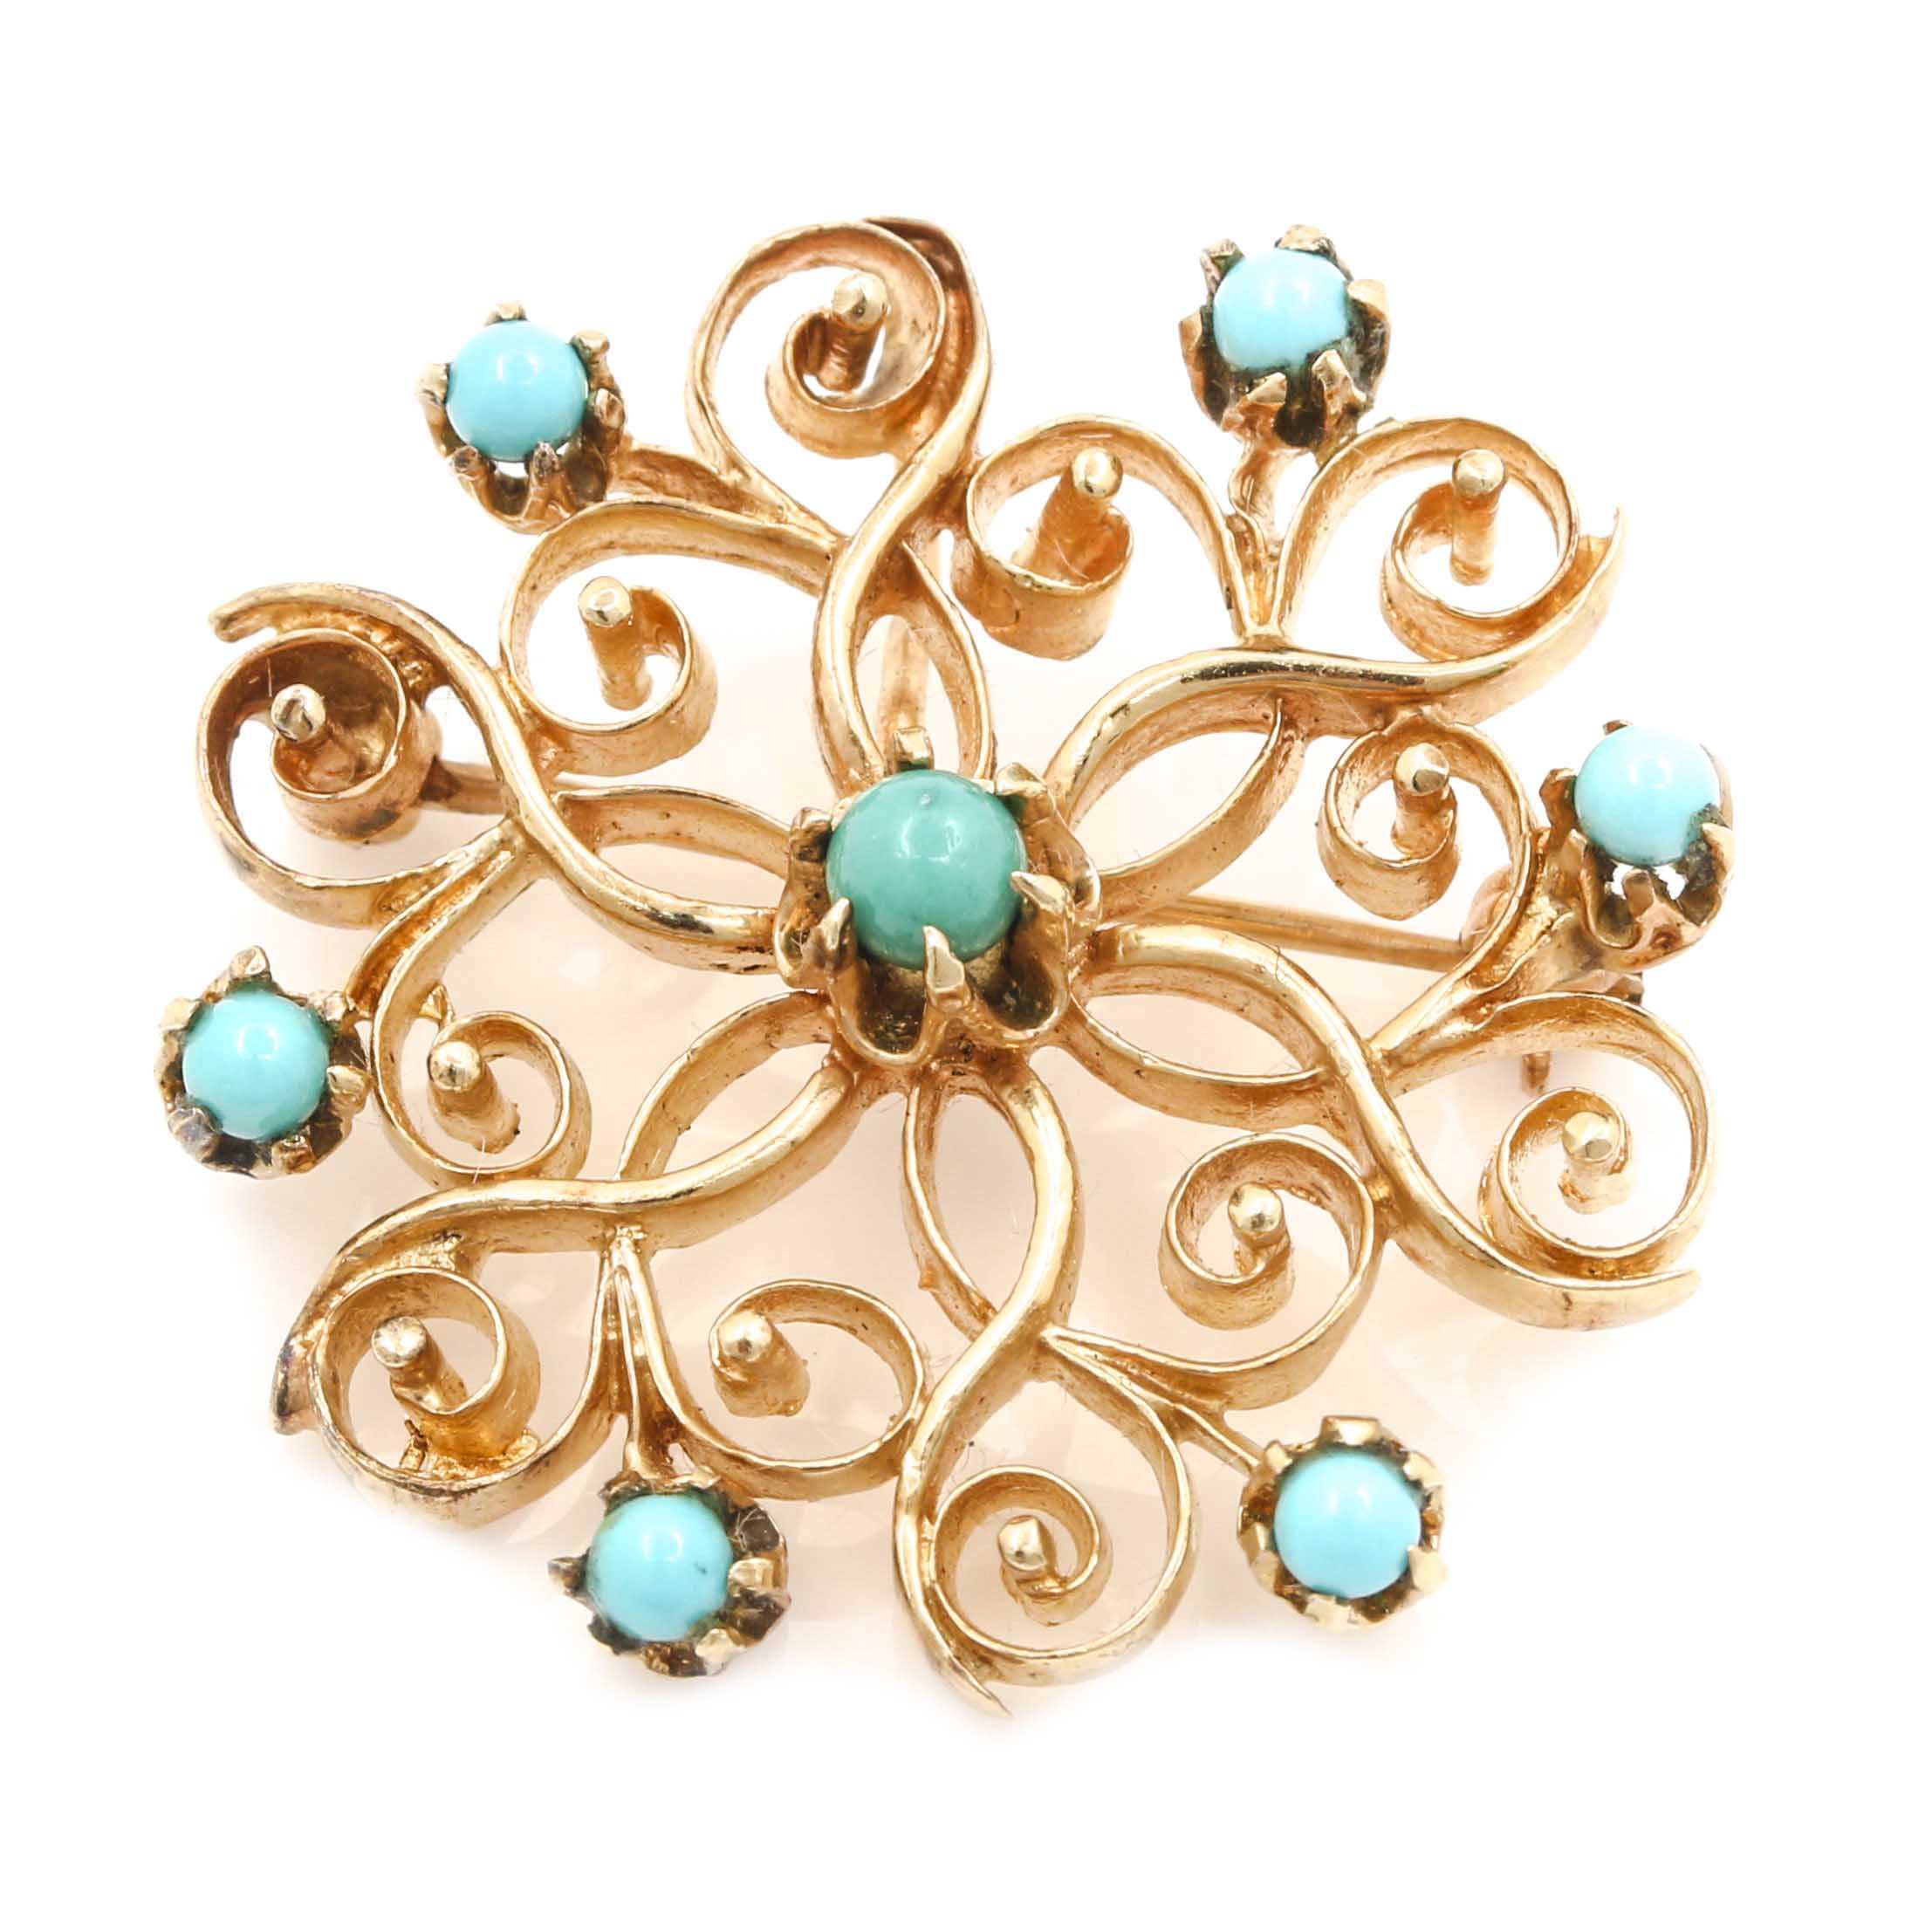 14K Yellow Gold Turquoise Openwork Brooch